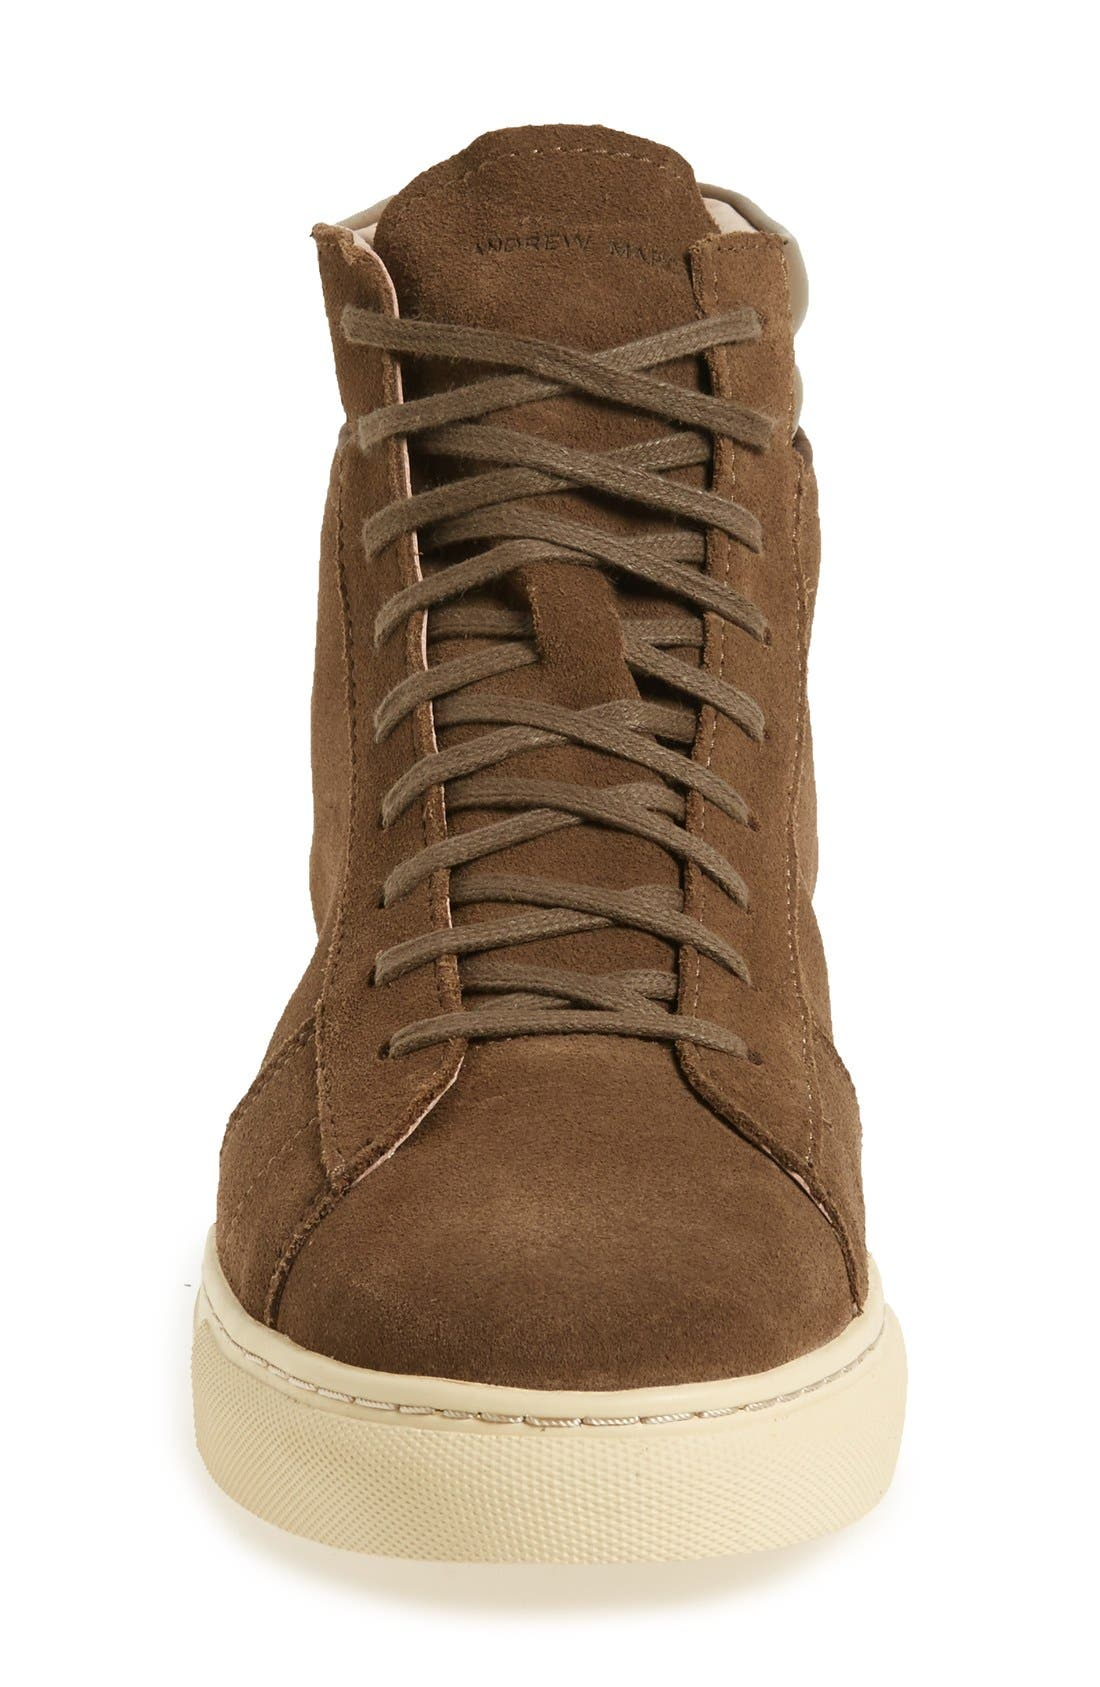 Alternate Image 3  - Andrew Marc 'Remsen' High Top Sneaker (Men)